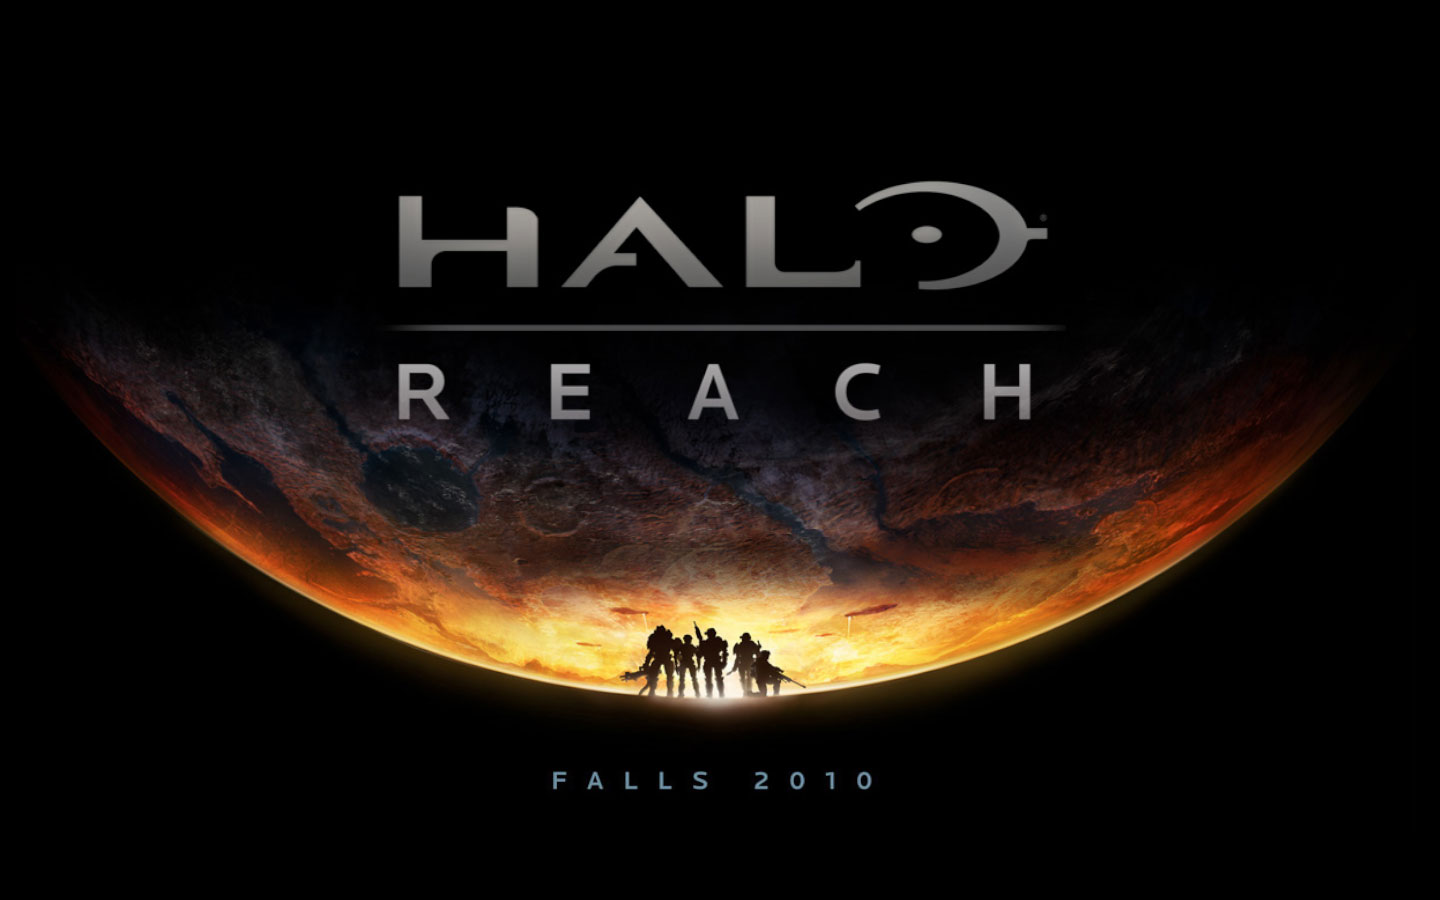 ... sequel Halo: Reach was released two days ago (14th September 2010